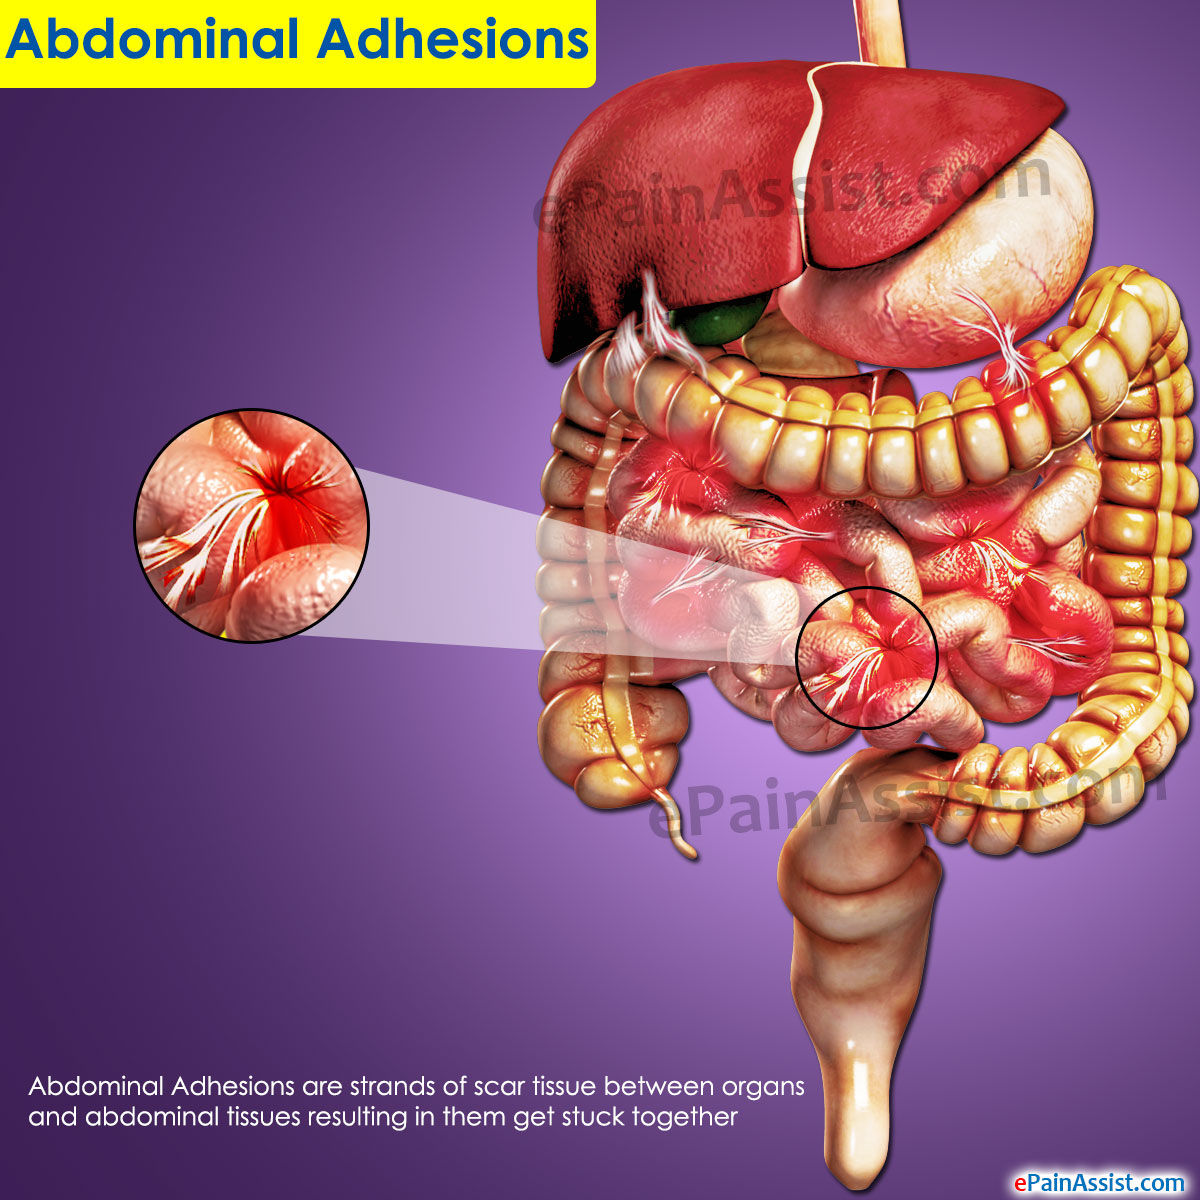 Treatment of intestinal adhesions, their symptoms, diagnosis and prevention